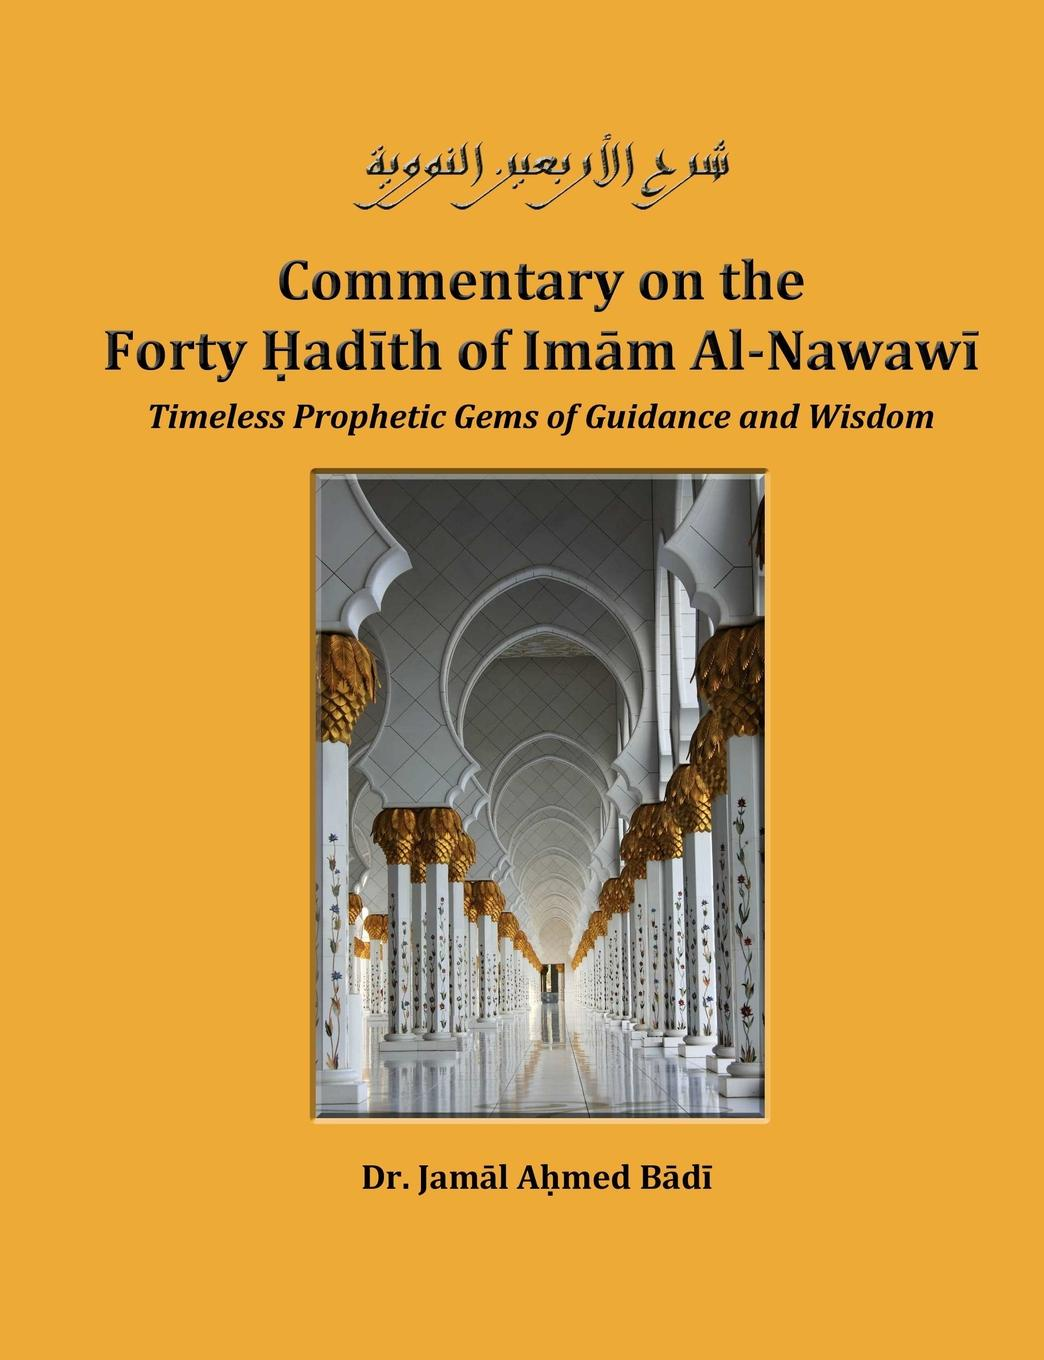 Dr. Jamal Ahmed Badi Commentary on the Forty Hadith of Imam Al-Nawawi - Timeless Prophetic Gems of Guidance and Wisdom ahmed a najaf the hydrocarbon potential of sargelu formation